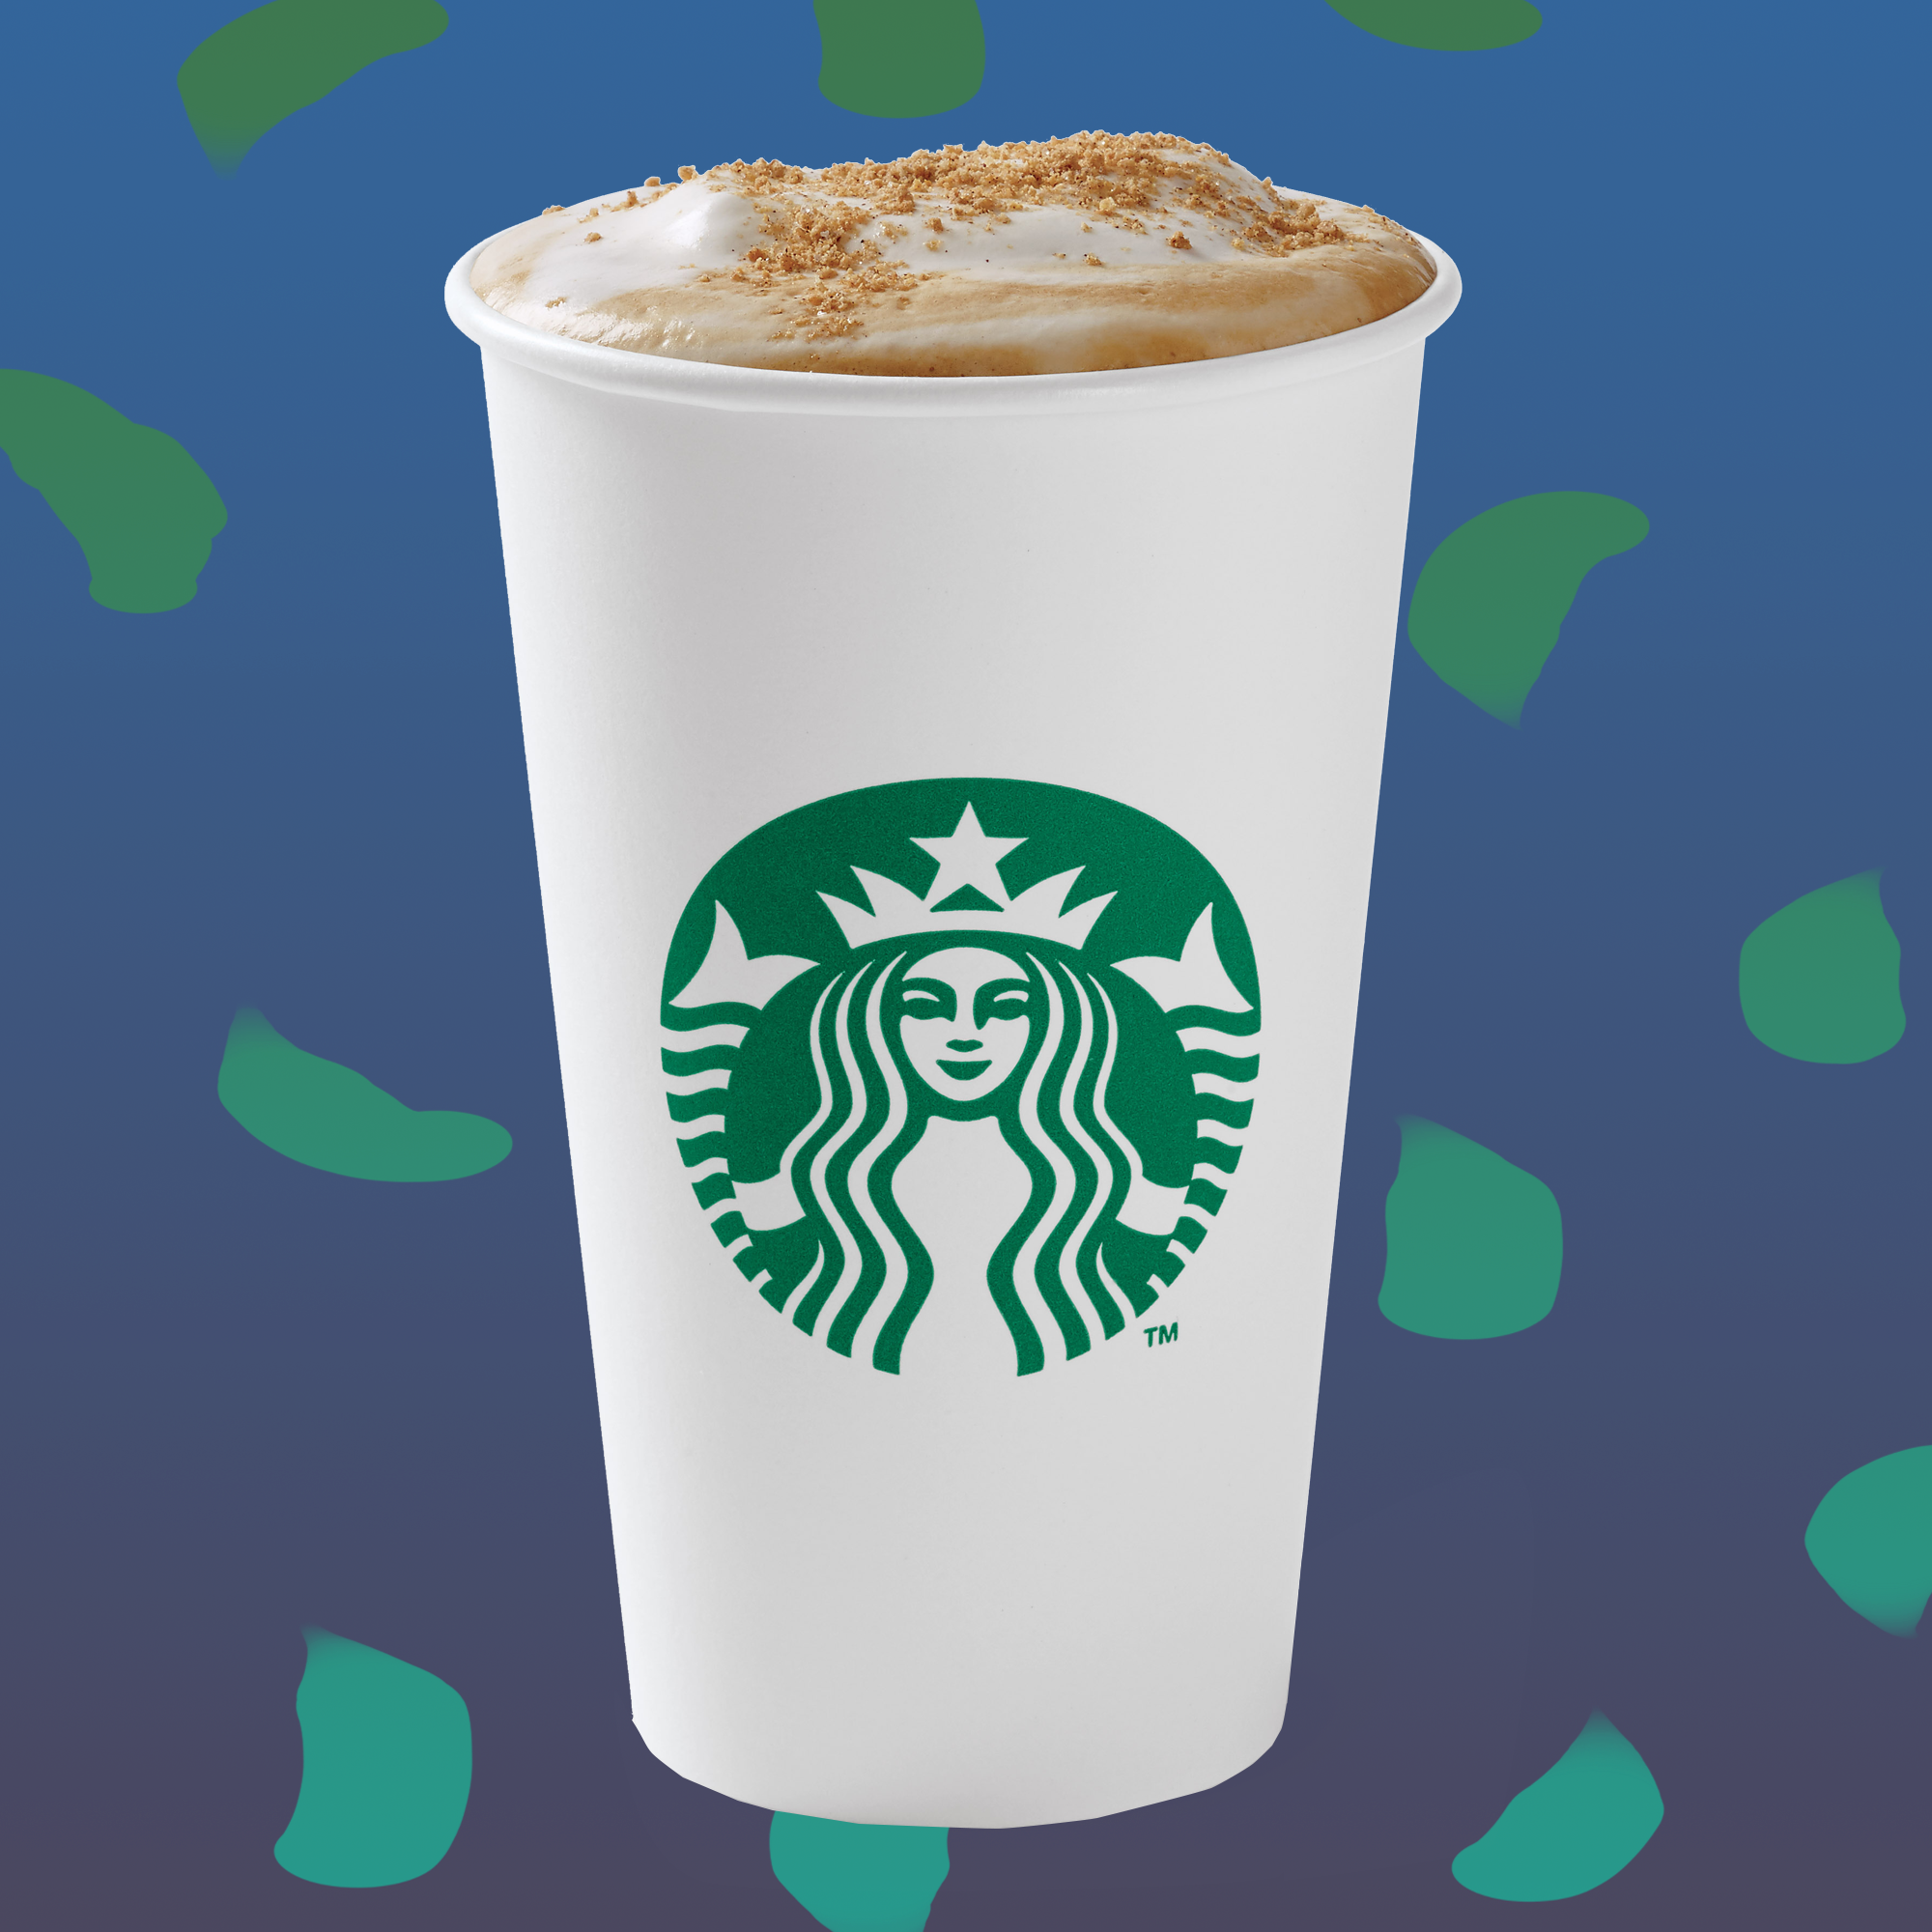 starbucks review The commission, a citizen oversight board established in 1994, spent months reviewing the episode that sparked national outrage and ignited conversations about police practices and racial profiling.